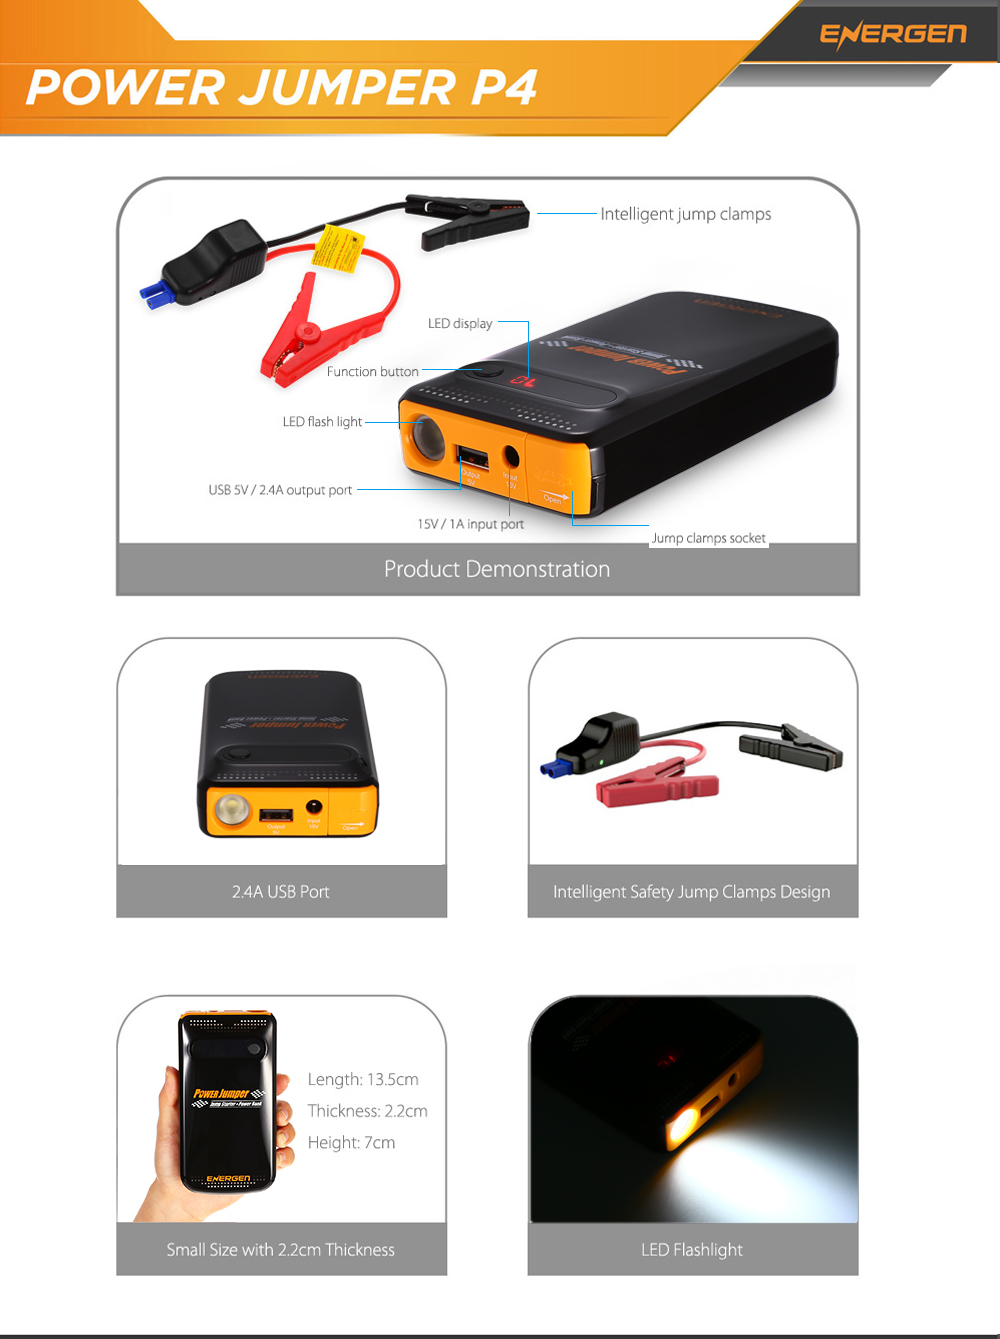 ENERGEN P4 400A Peak Current Start Jumper For Car 10000mAh Capacity Power Charger